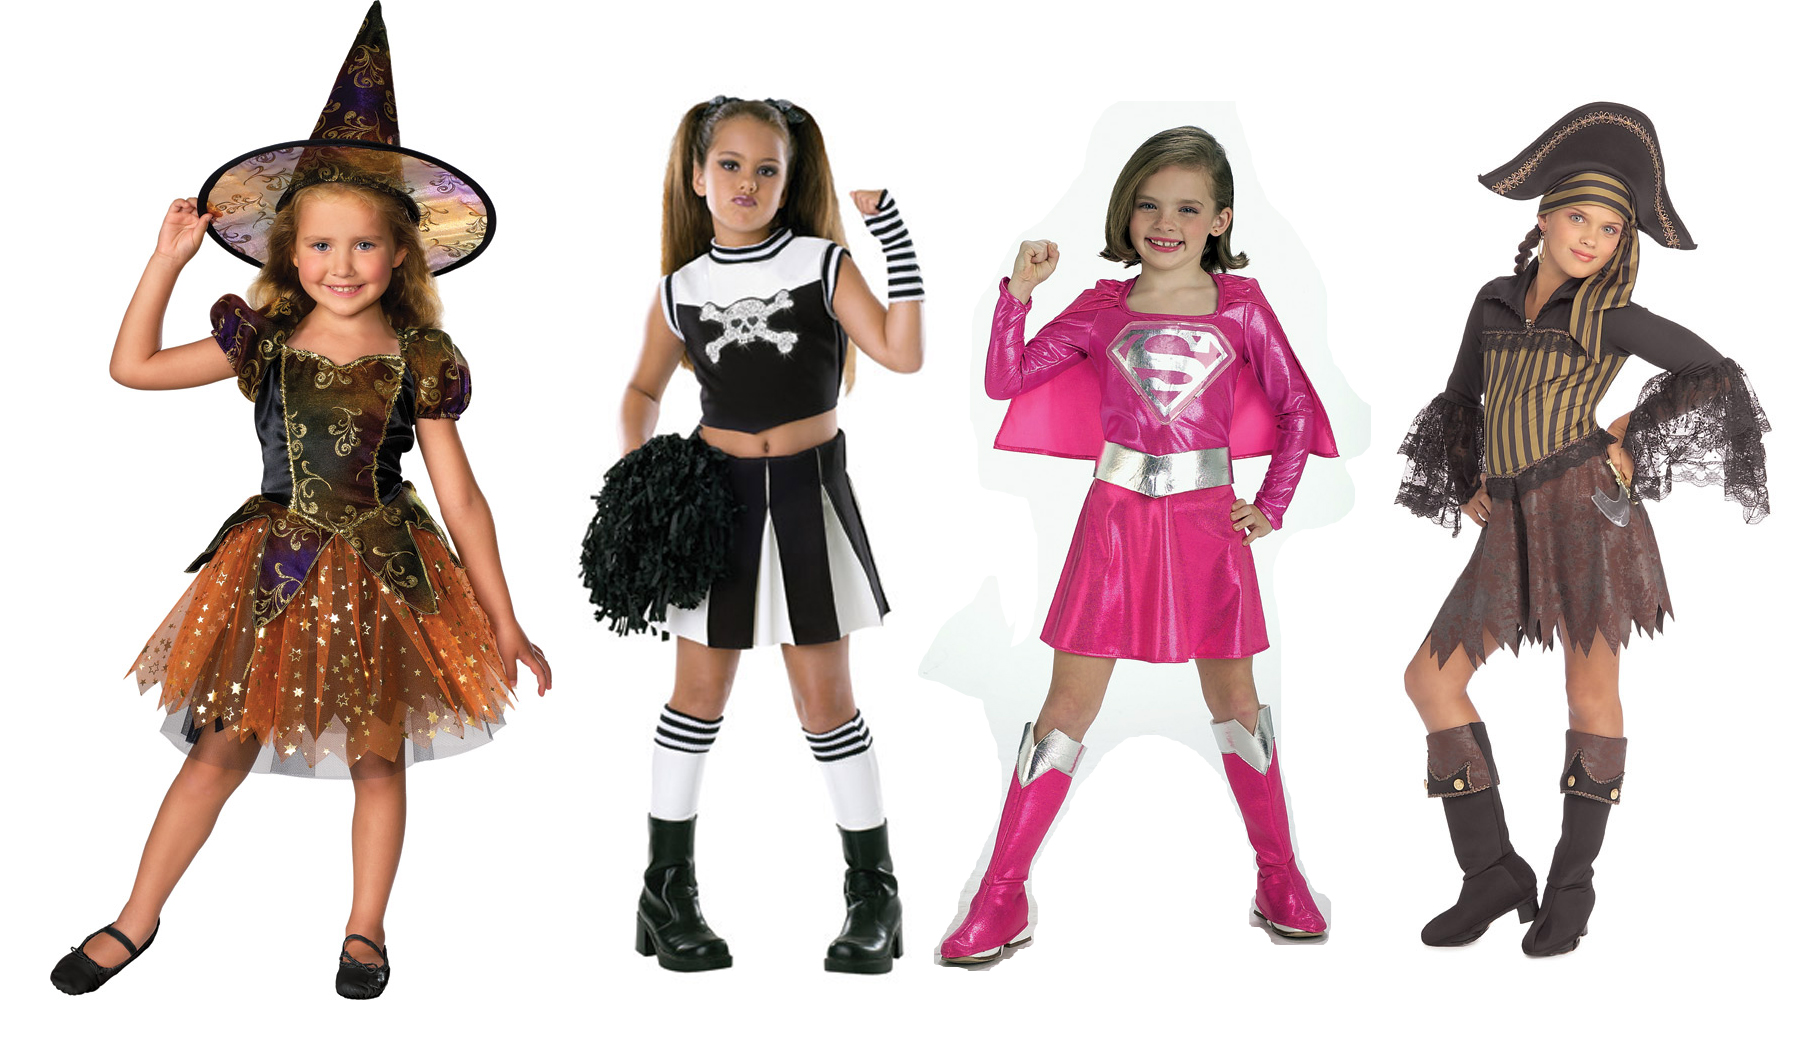 Smashwords – Halloween Costume For Kids: Important Shopping Tips - A ...